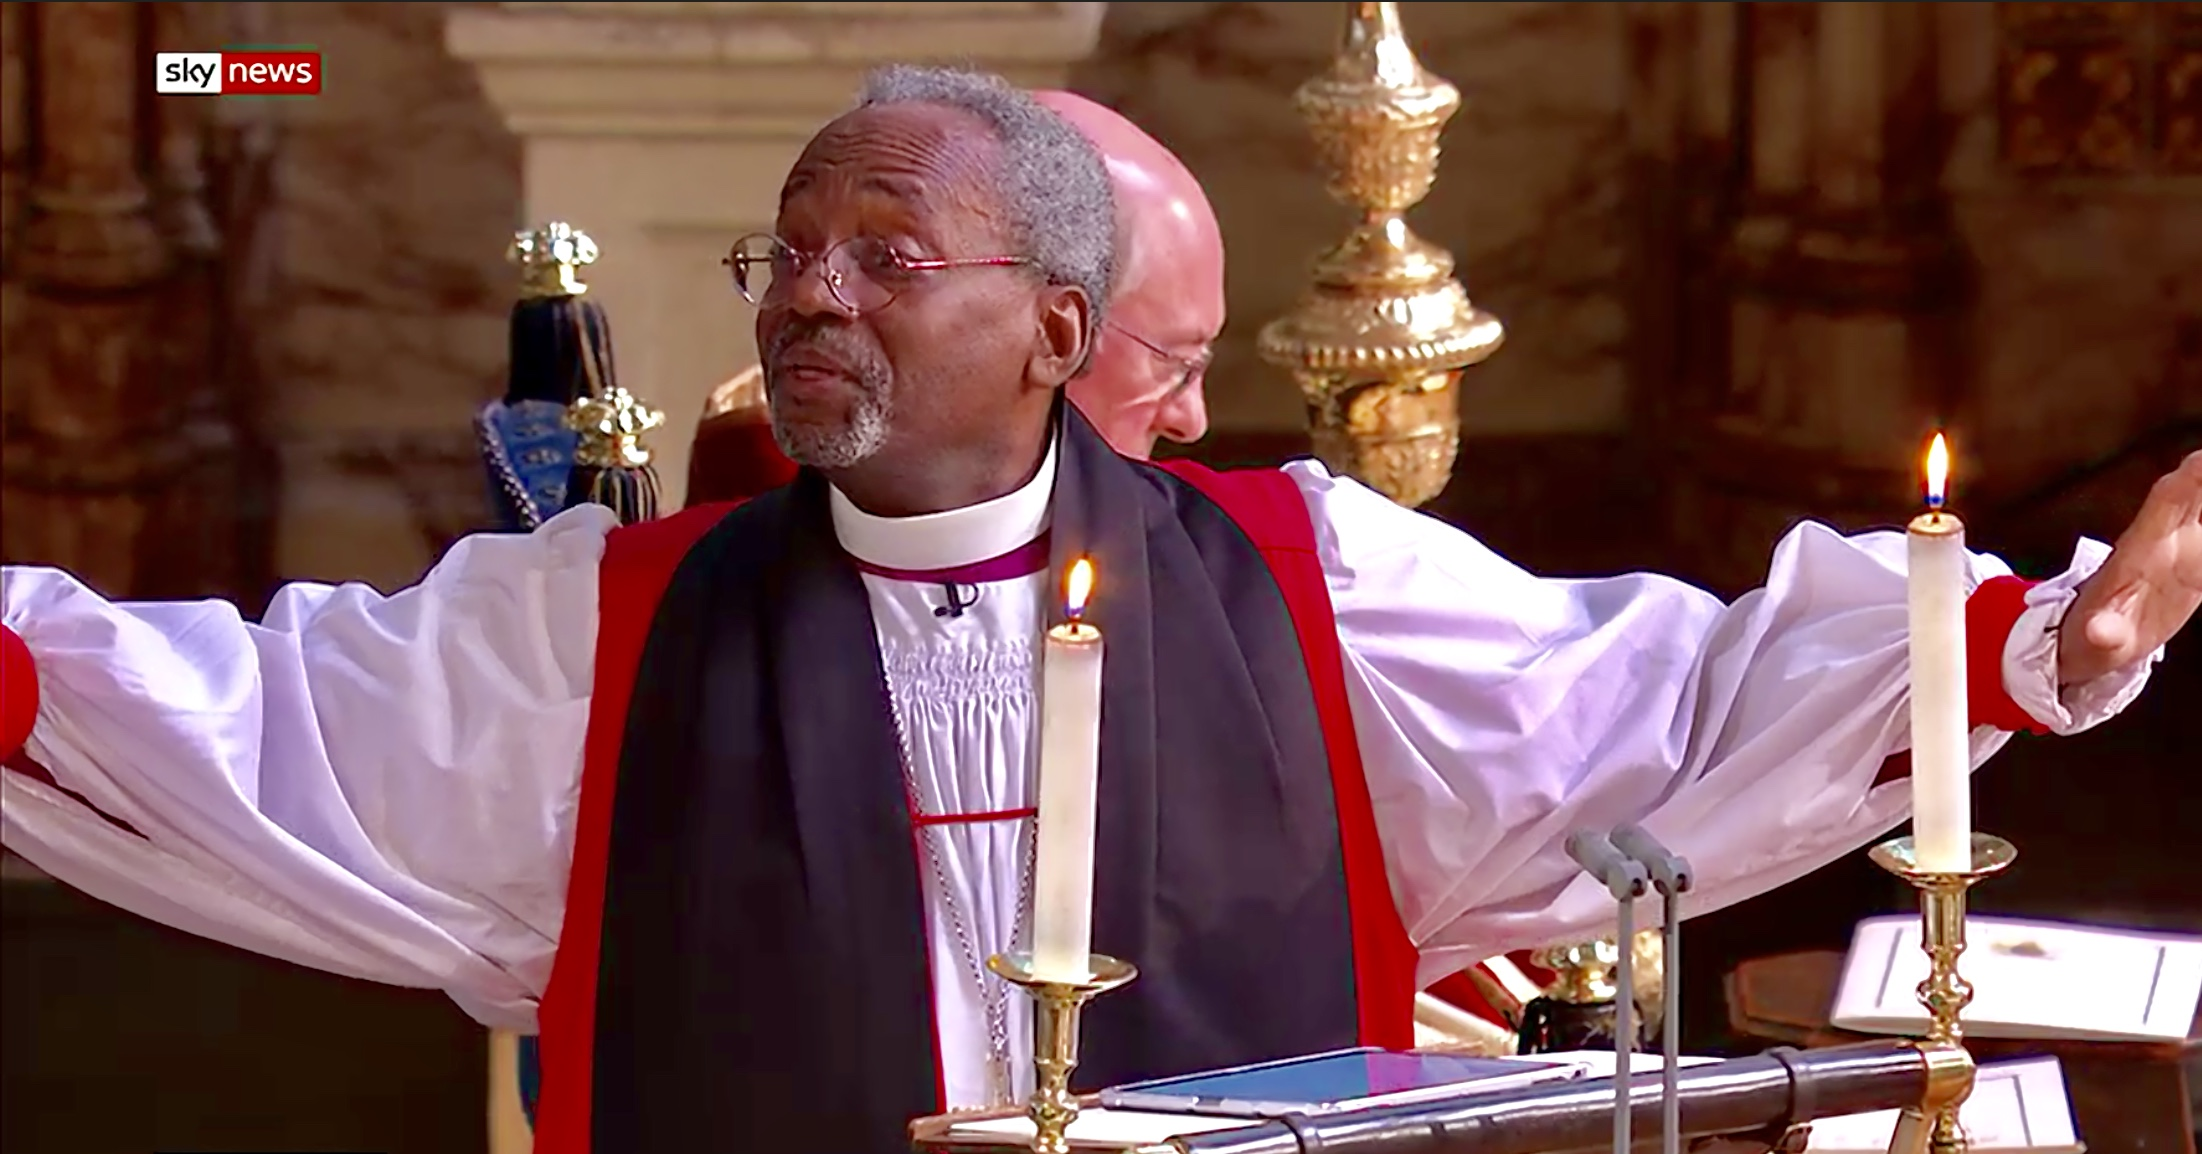 Michael Curry The Royal Wedding A Star Turn Offers The World